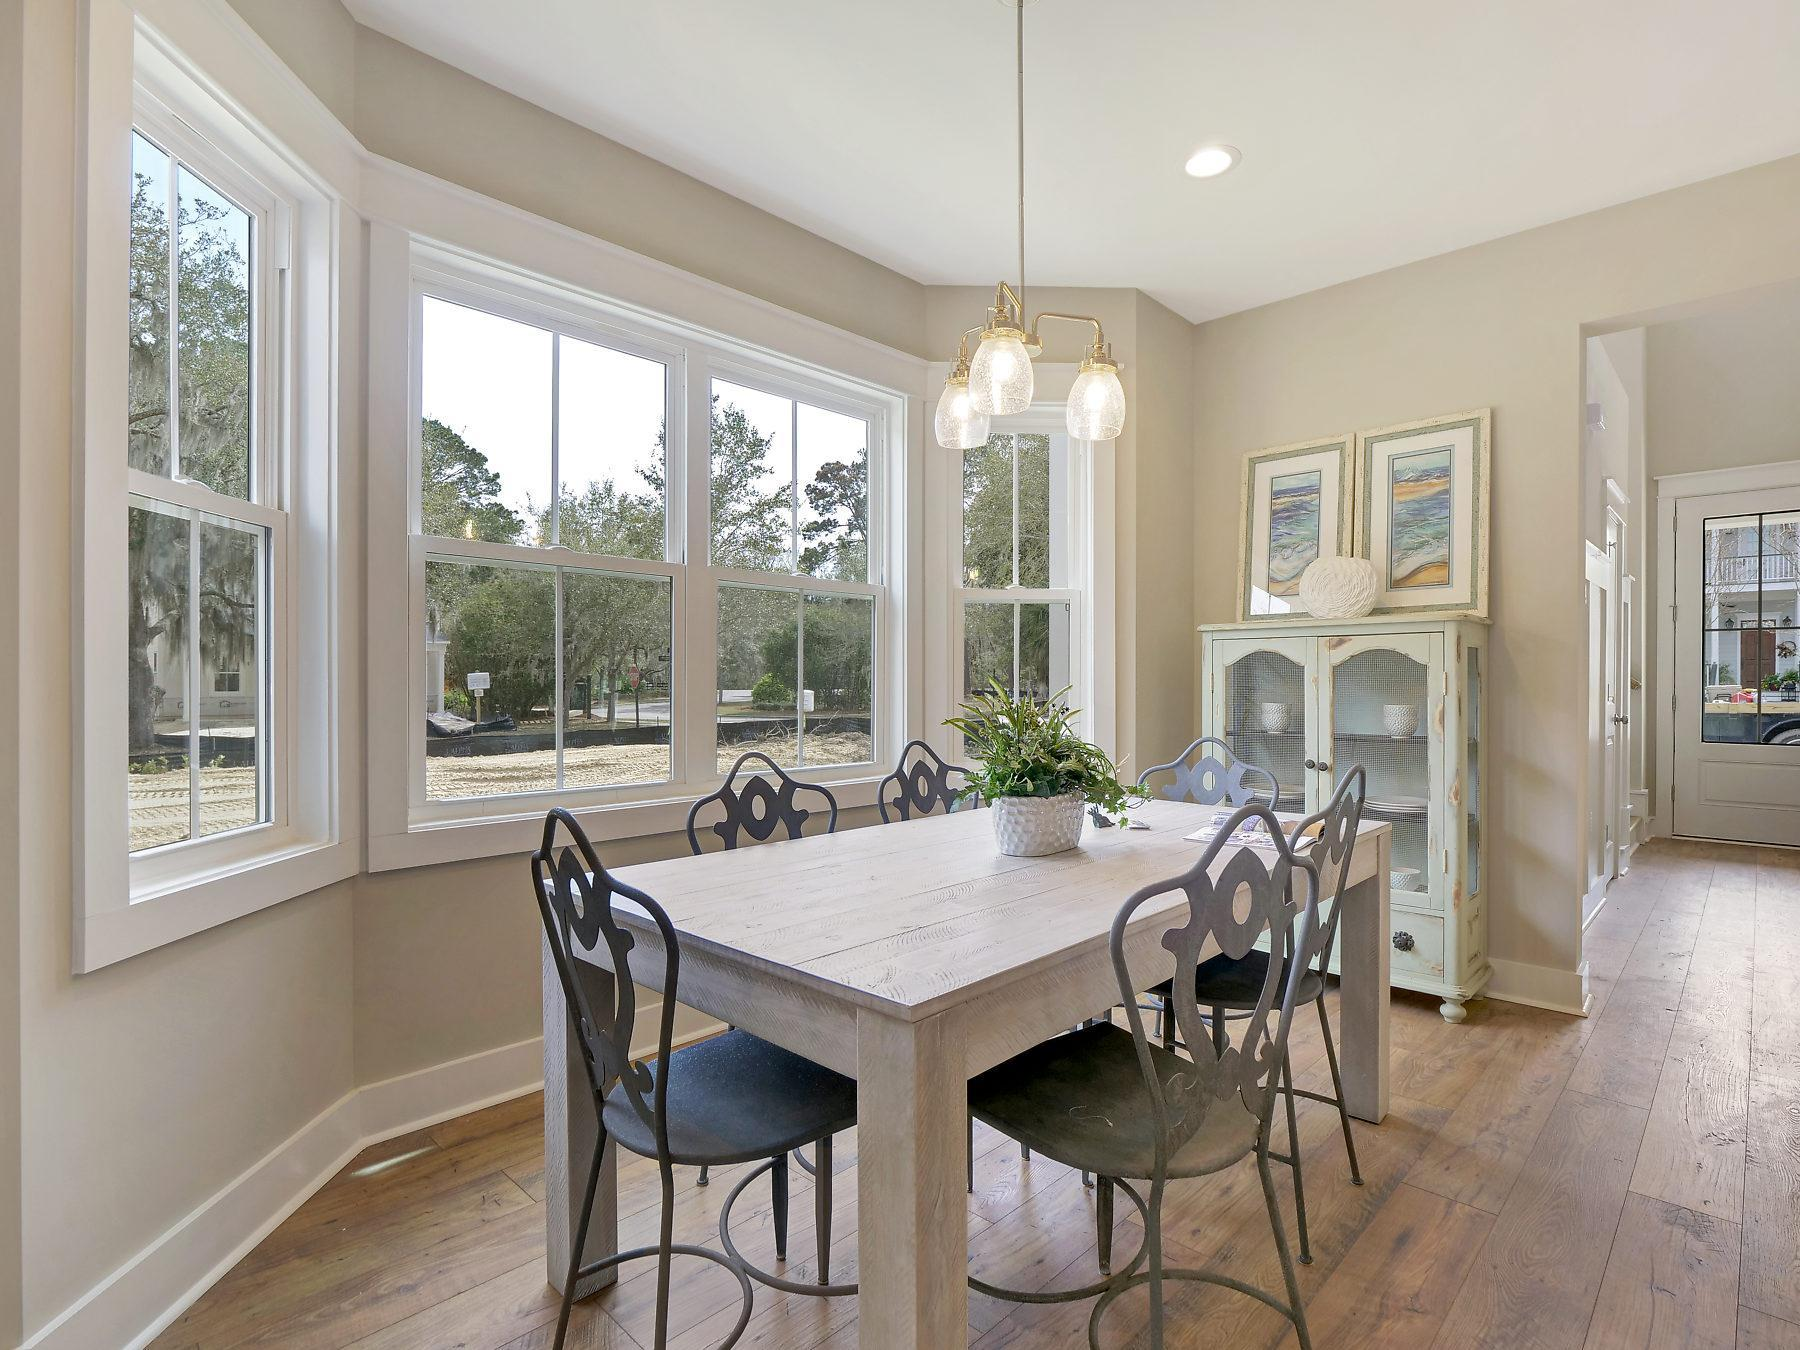 Kitchen featured in The Ashley River II By Village Park Homes in Savannah, GA